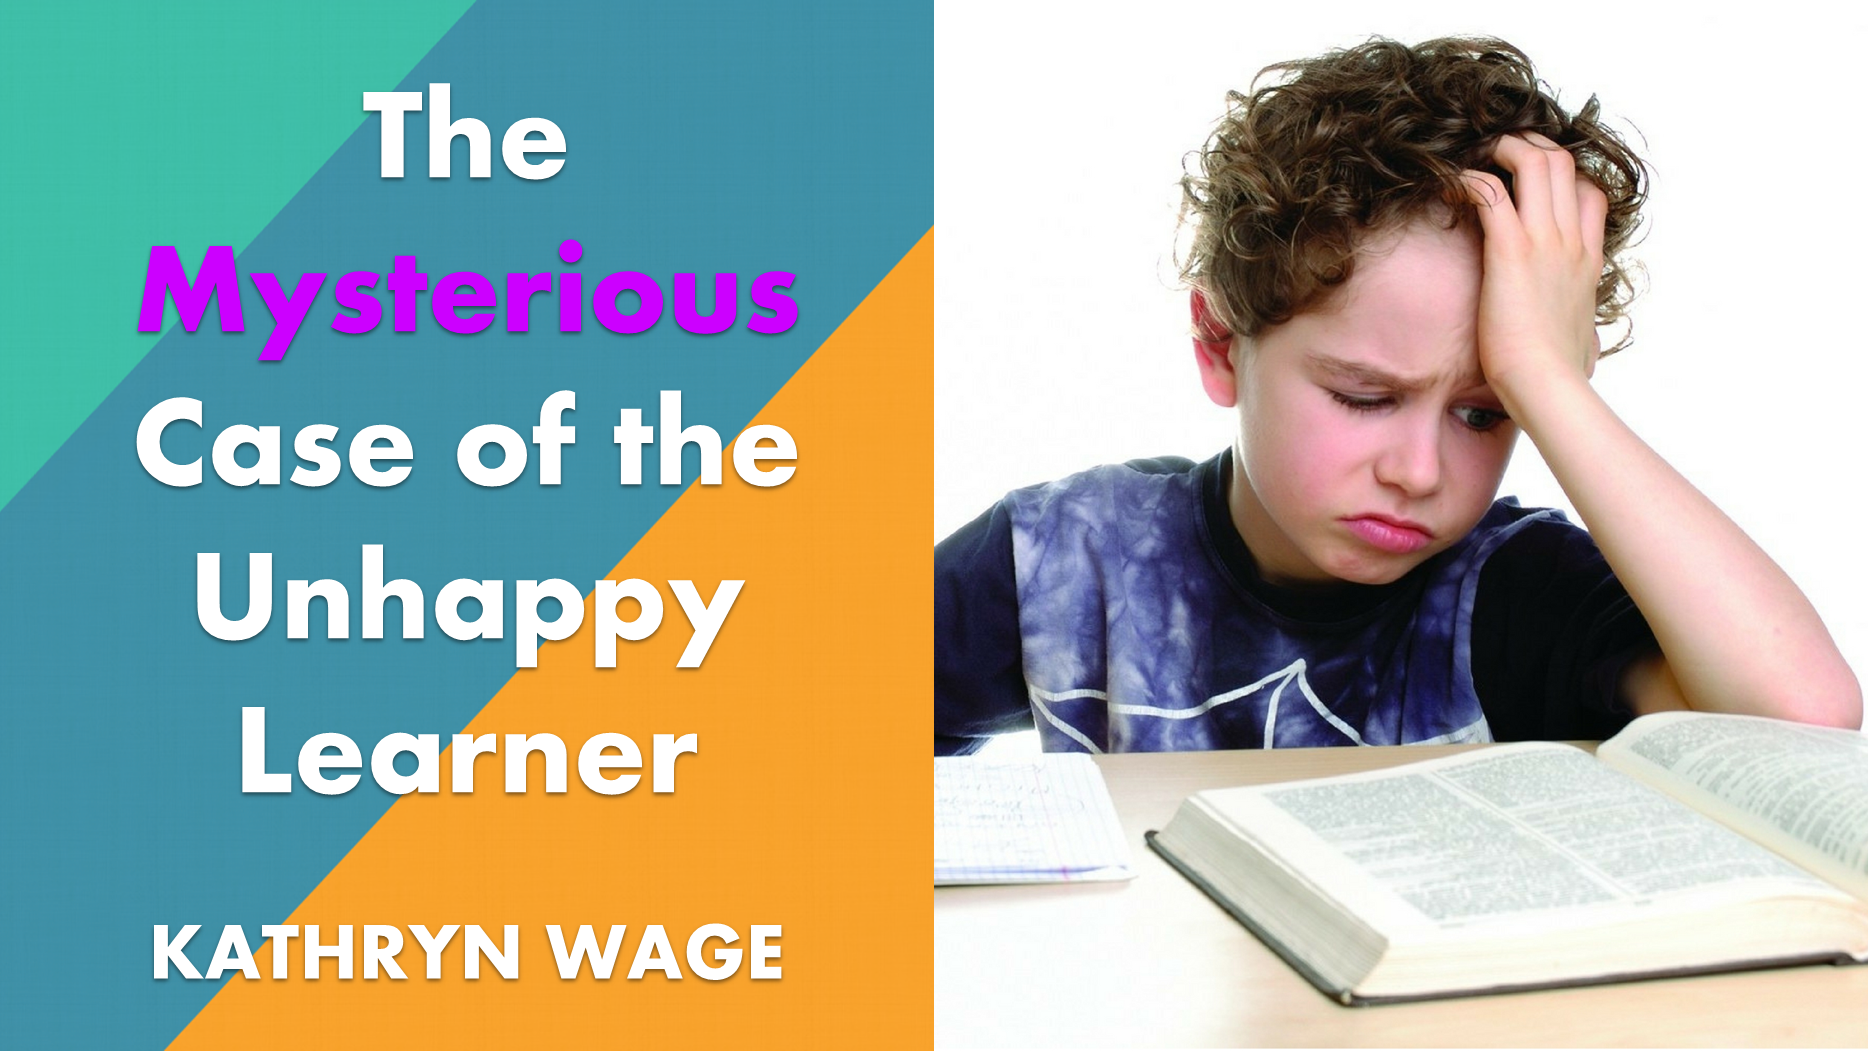 The Mysterious Case of the Unhappy Learner